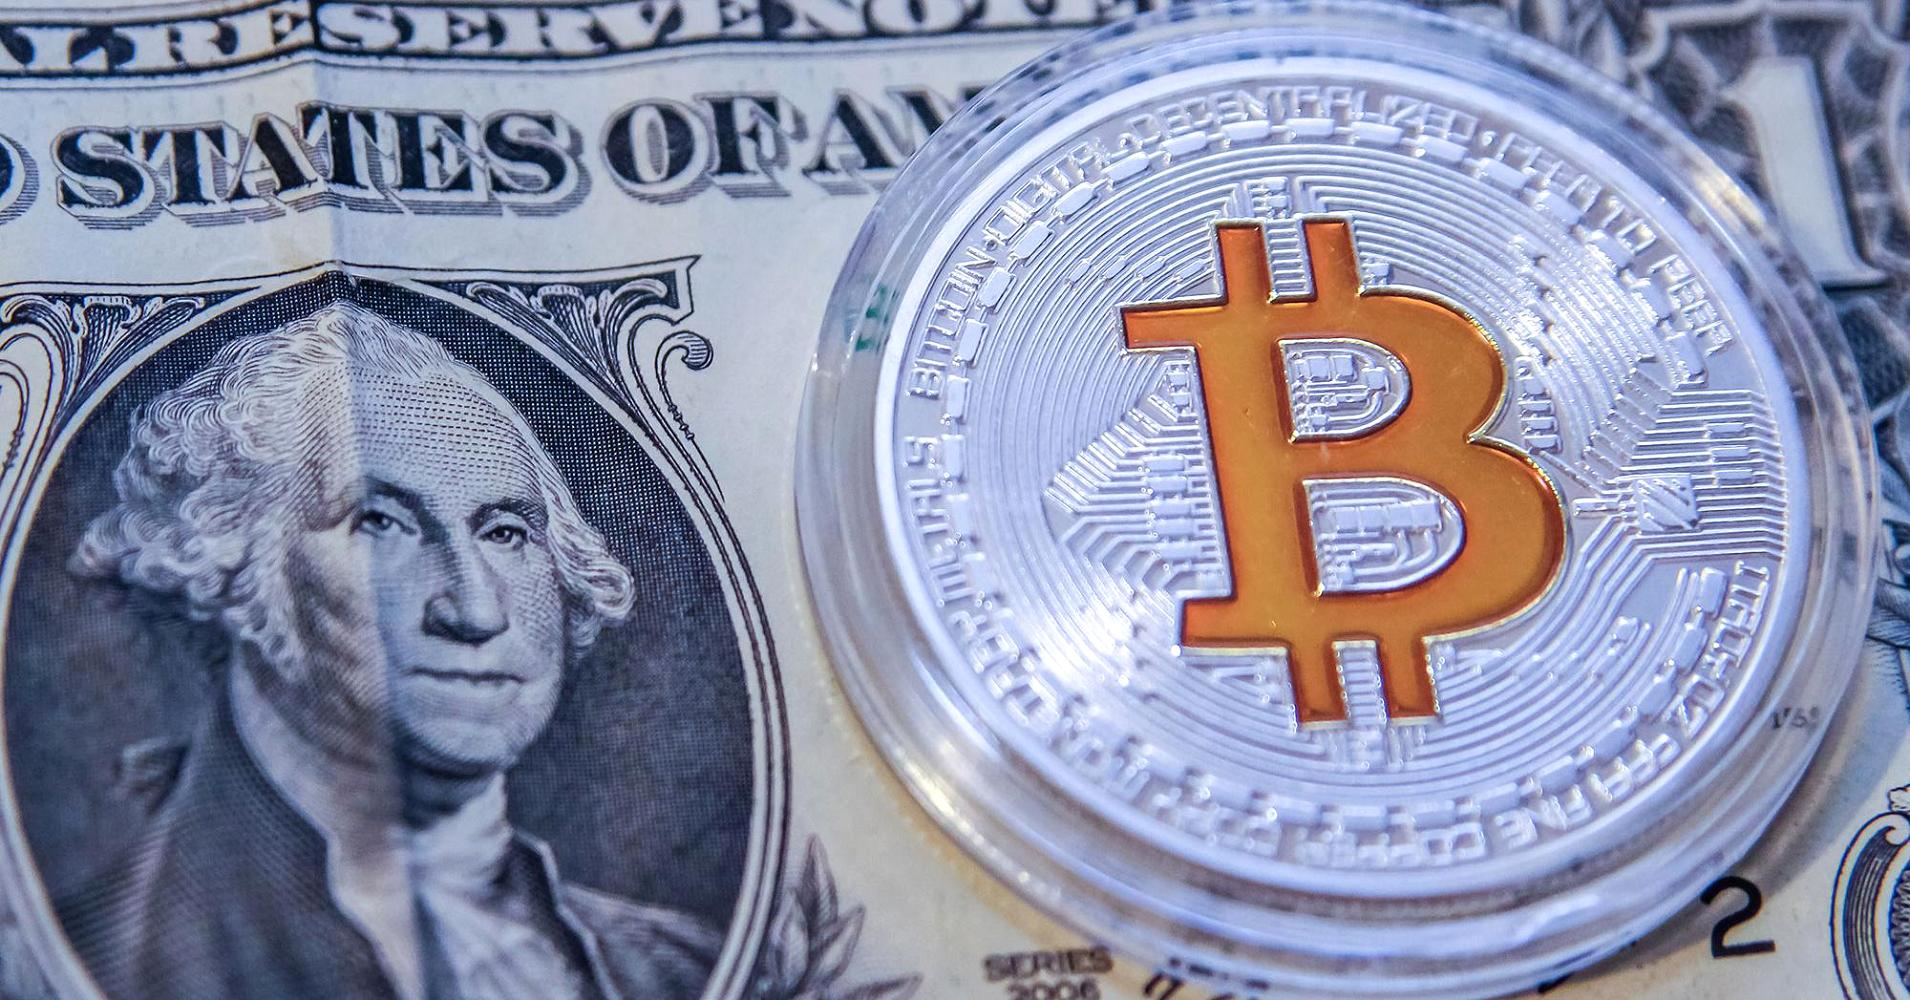 Blockchain Front Page: Can a Cryptocurrency replace the US Dollar to Become the World's Reserve Currency?